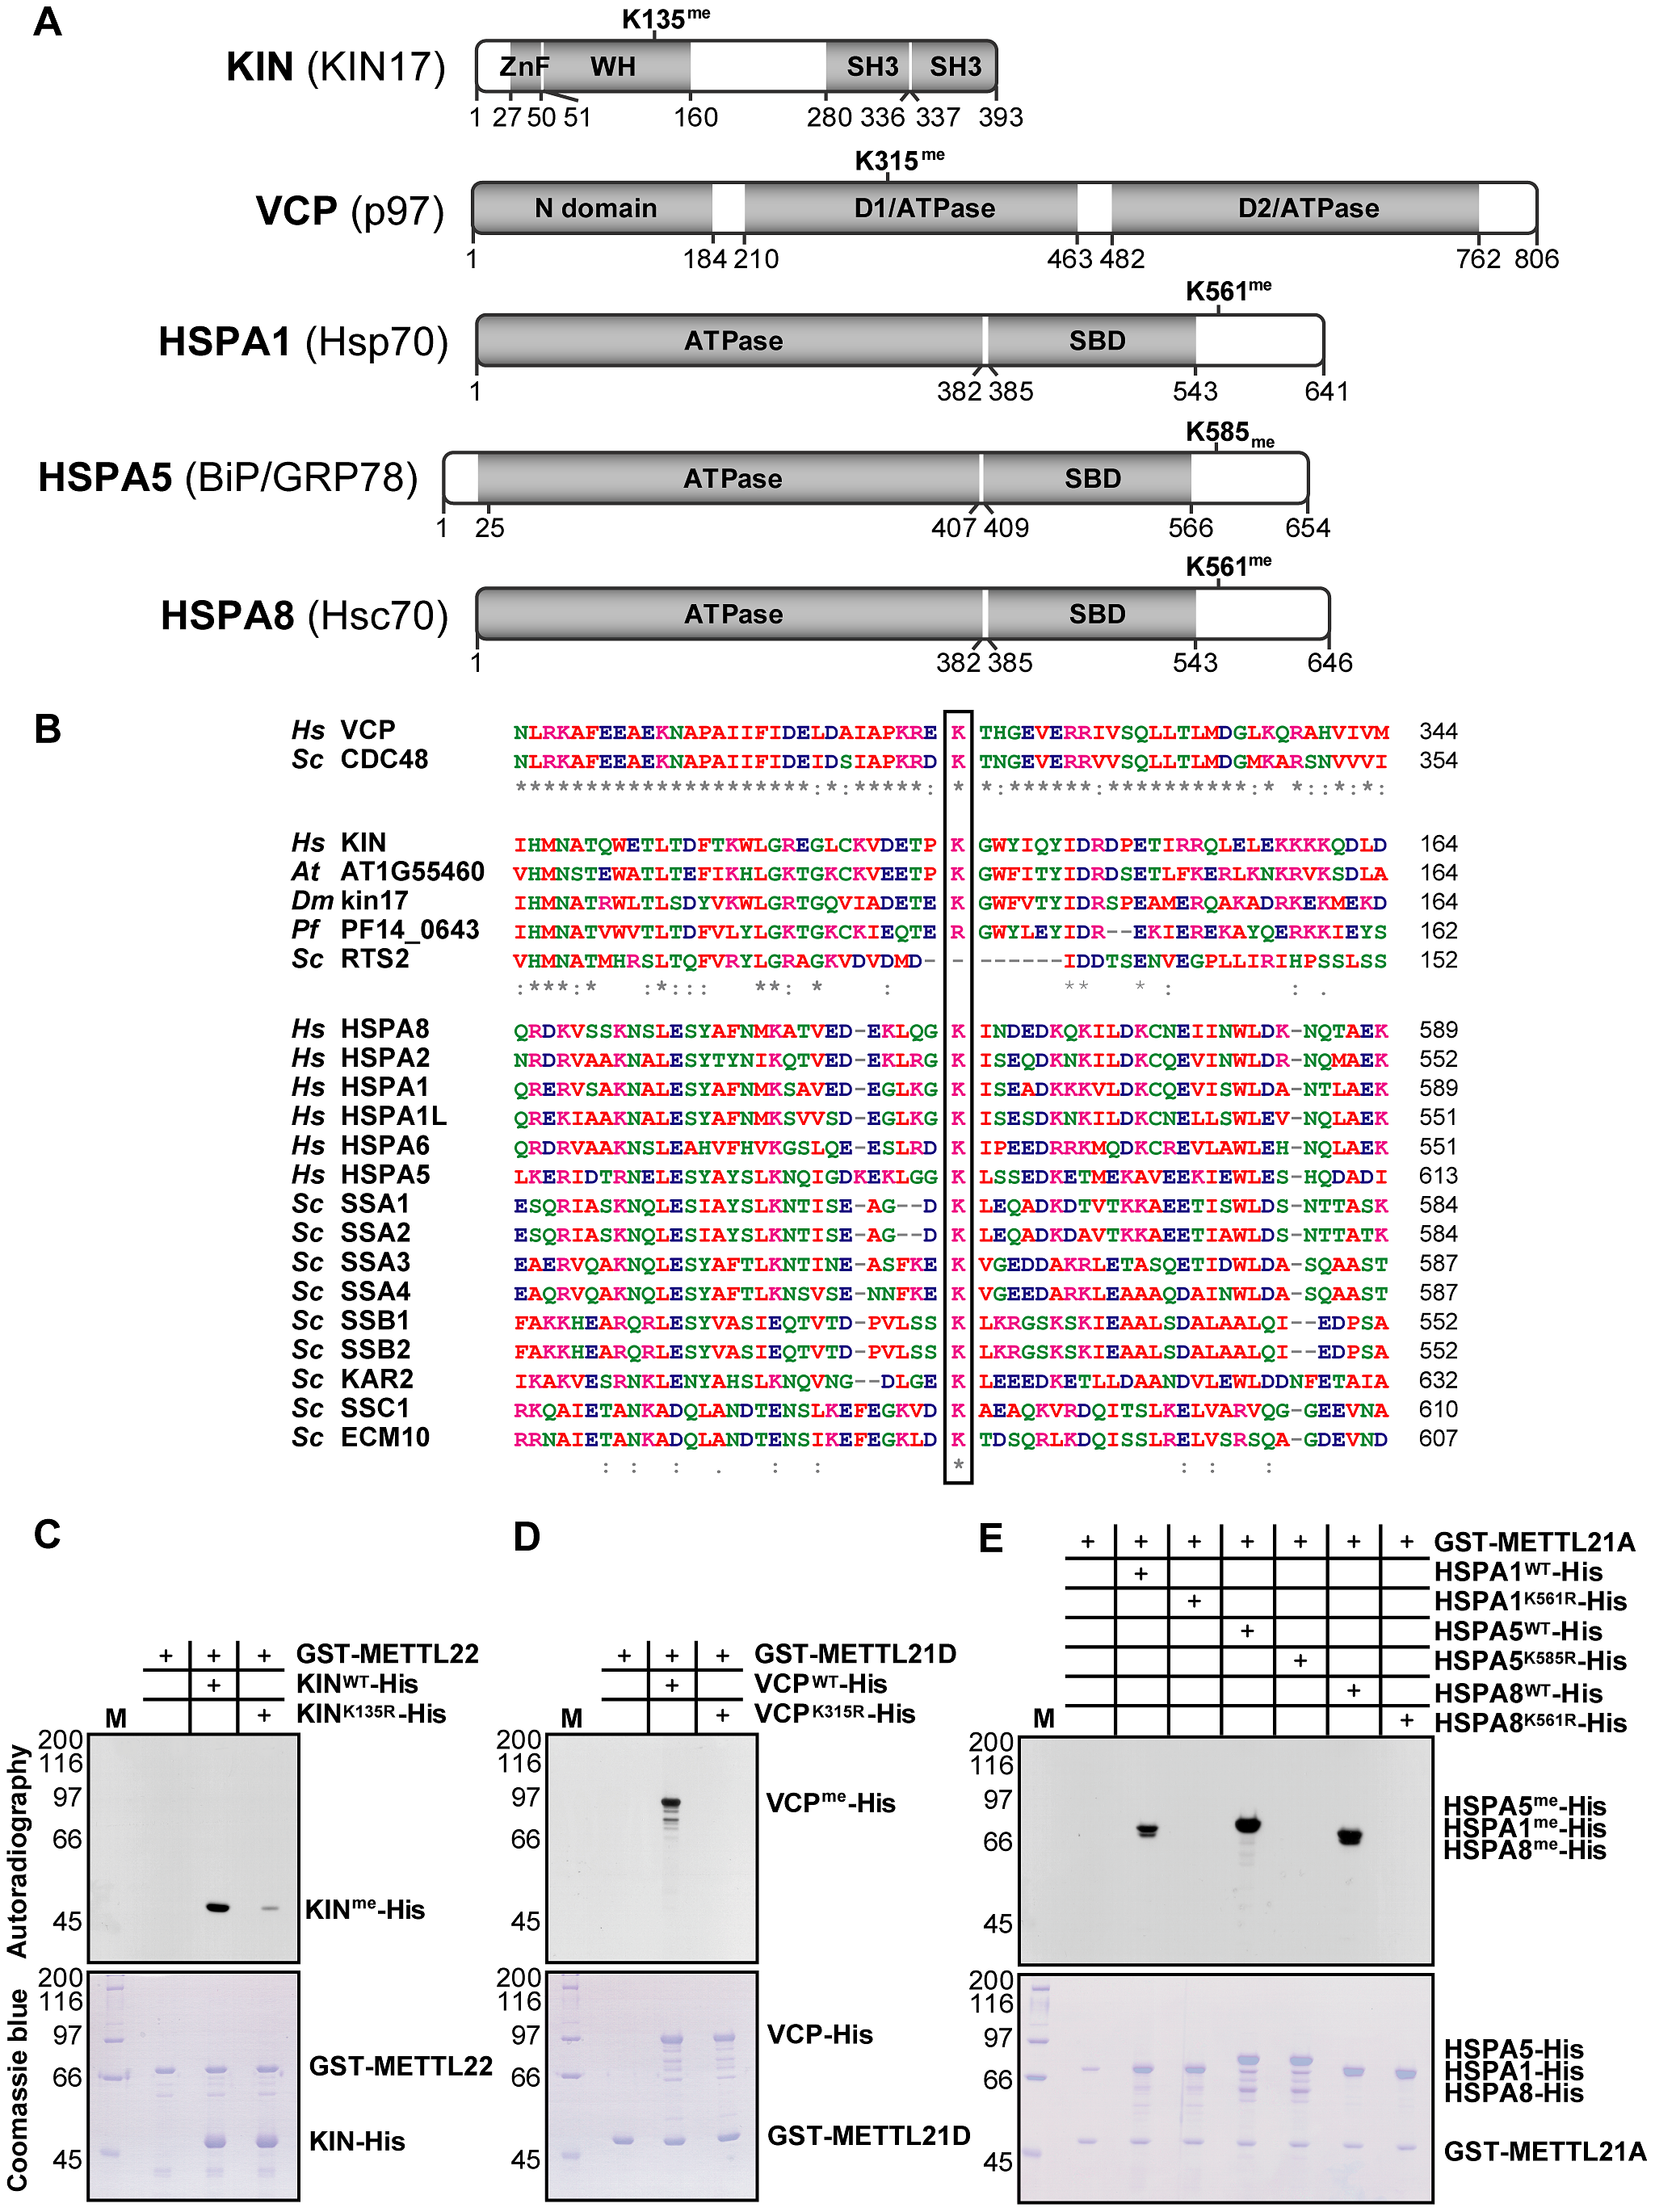 KIN, VCP, and a number of hsp70 isoforms are each trimethylated on lysine residues by specific methyltransferases within this family.